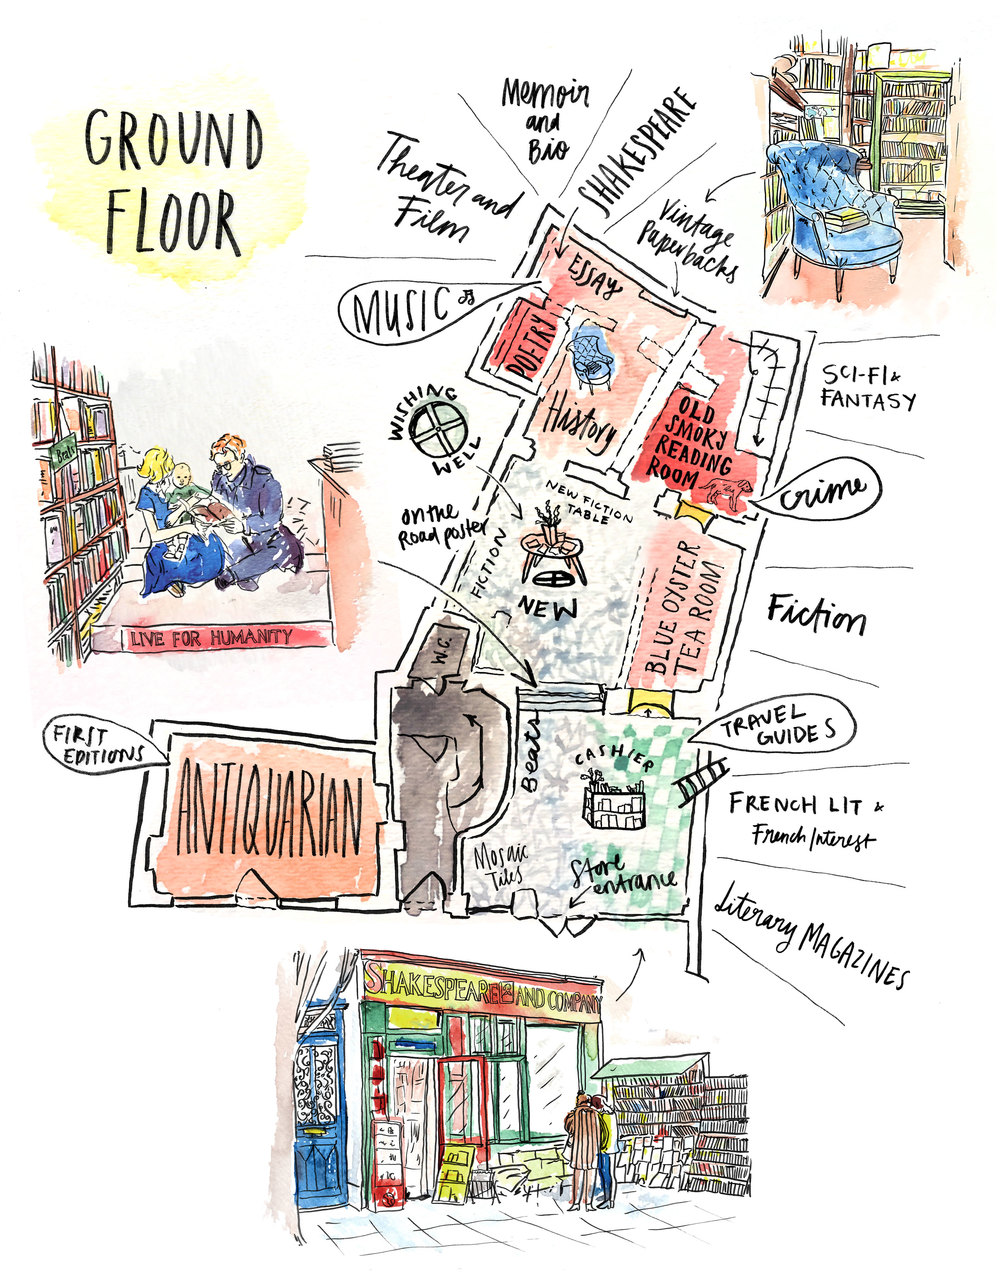 Shakespeares-groundfloor-floorplan.jpg